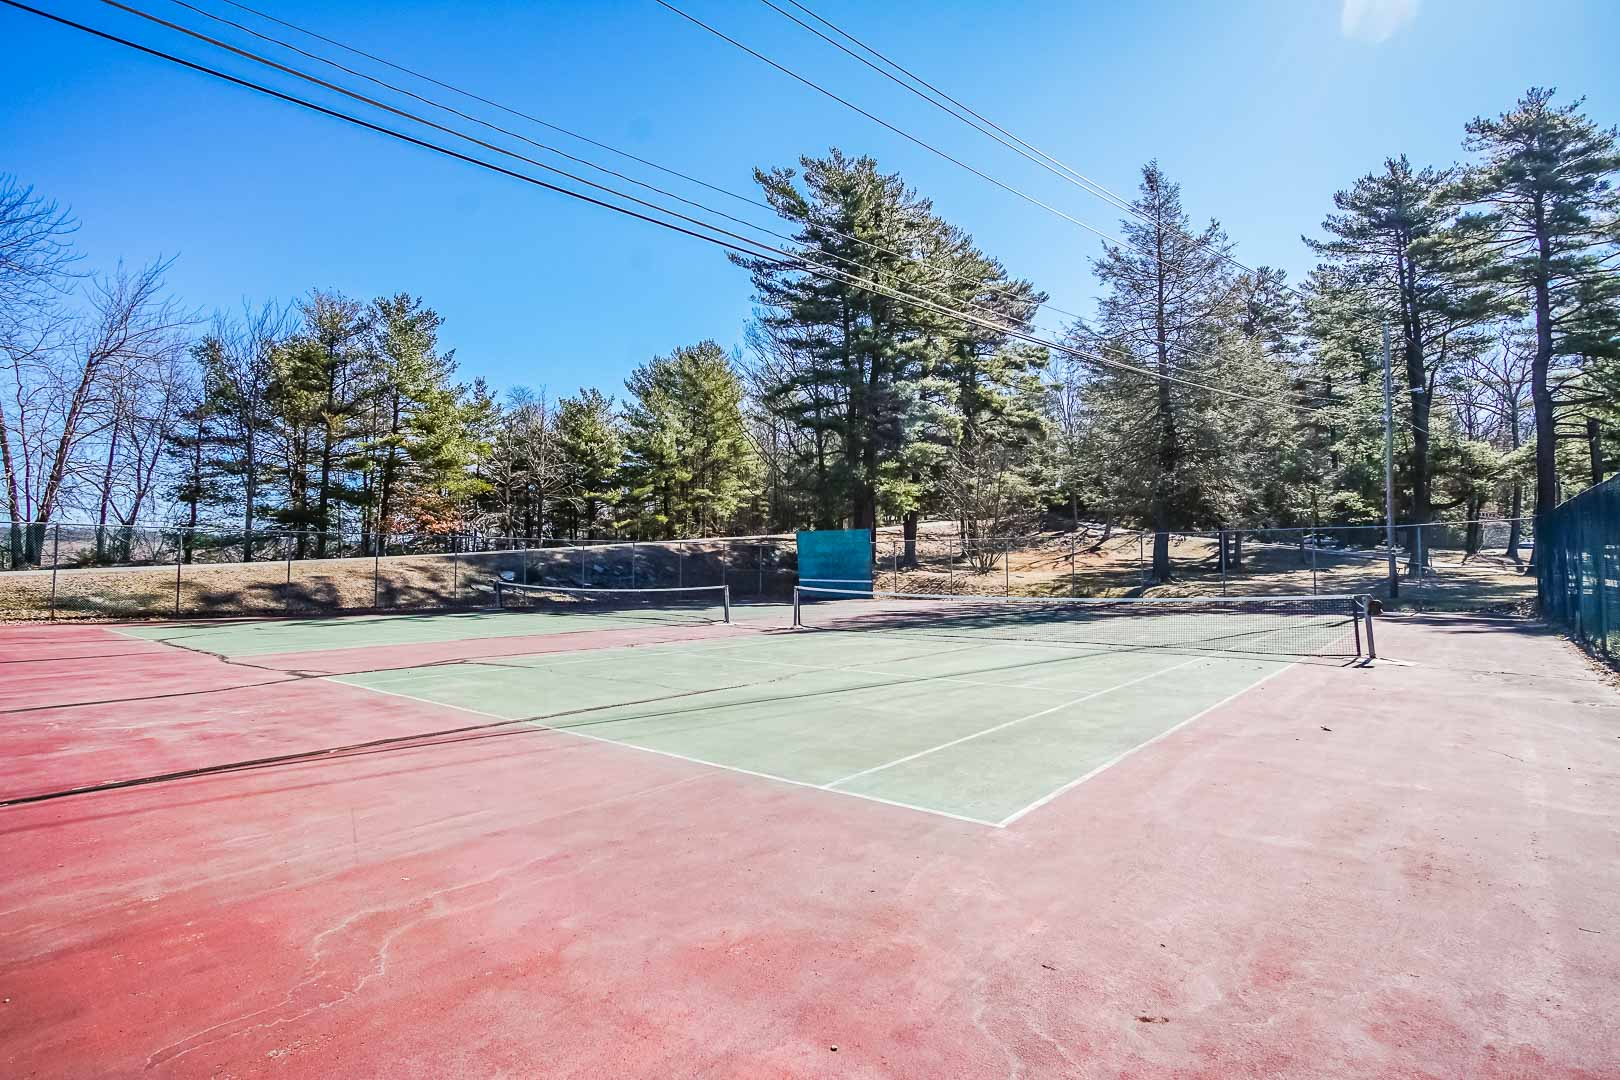 A n airy tennis court at VRI's Tanglwood Resort in Pennsylvania.